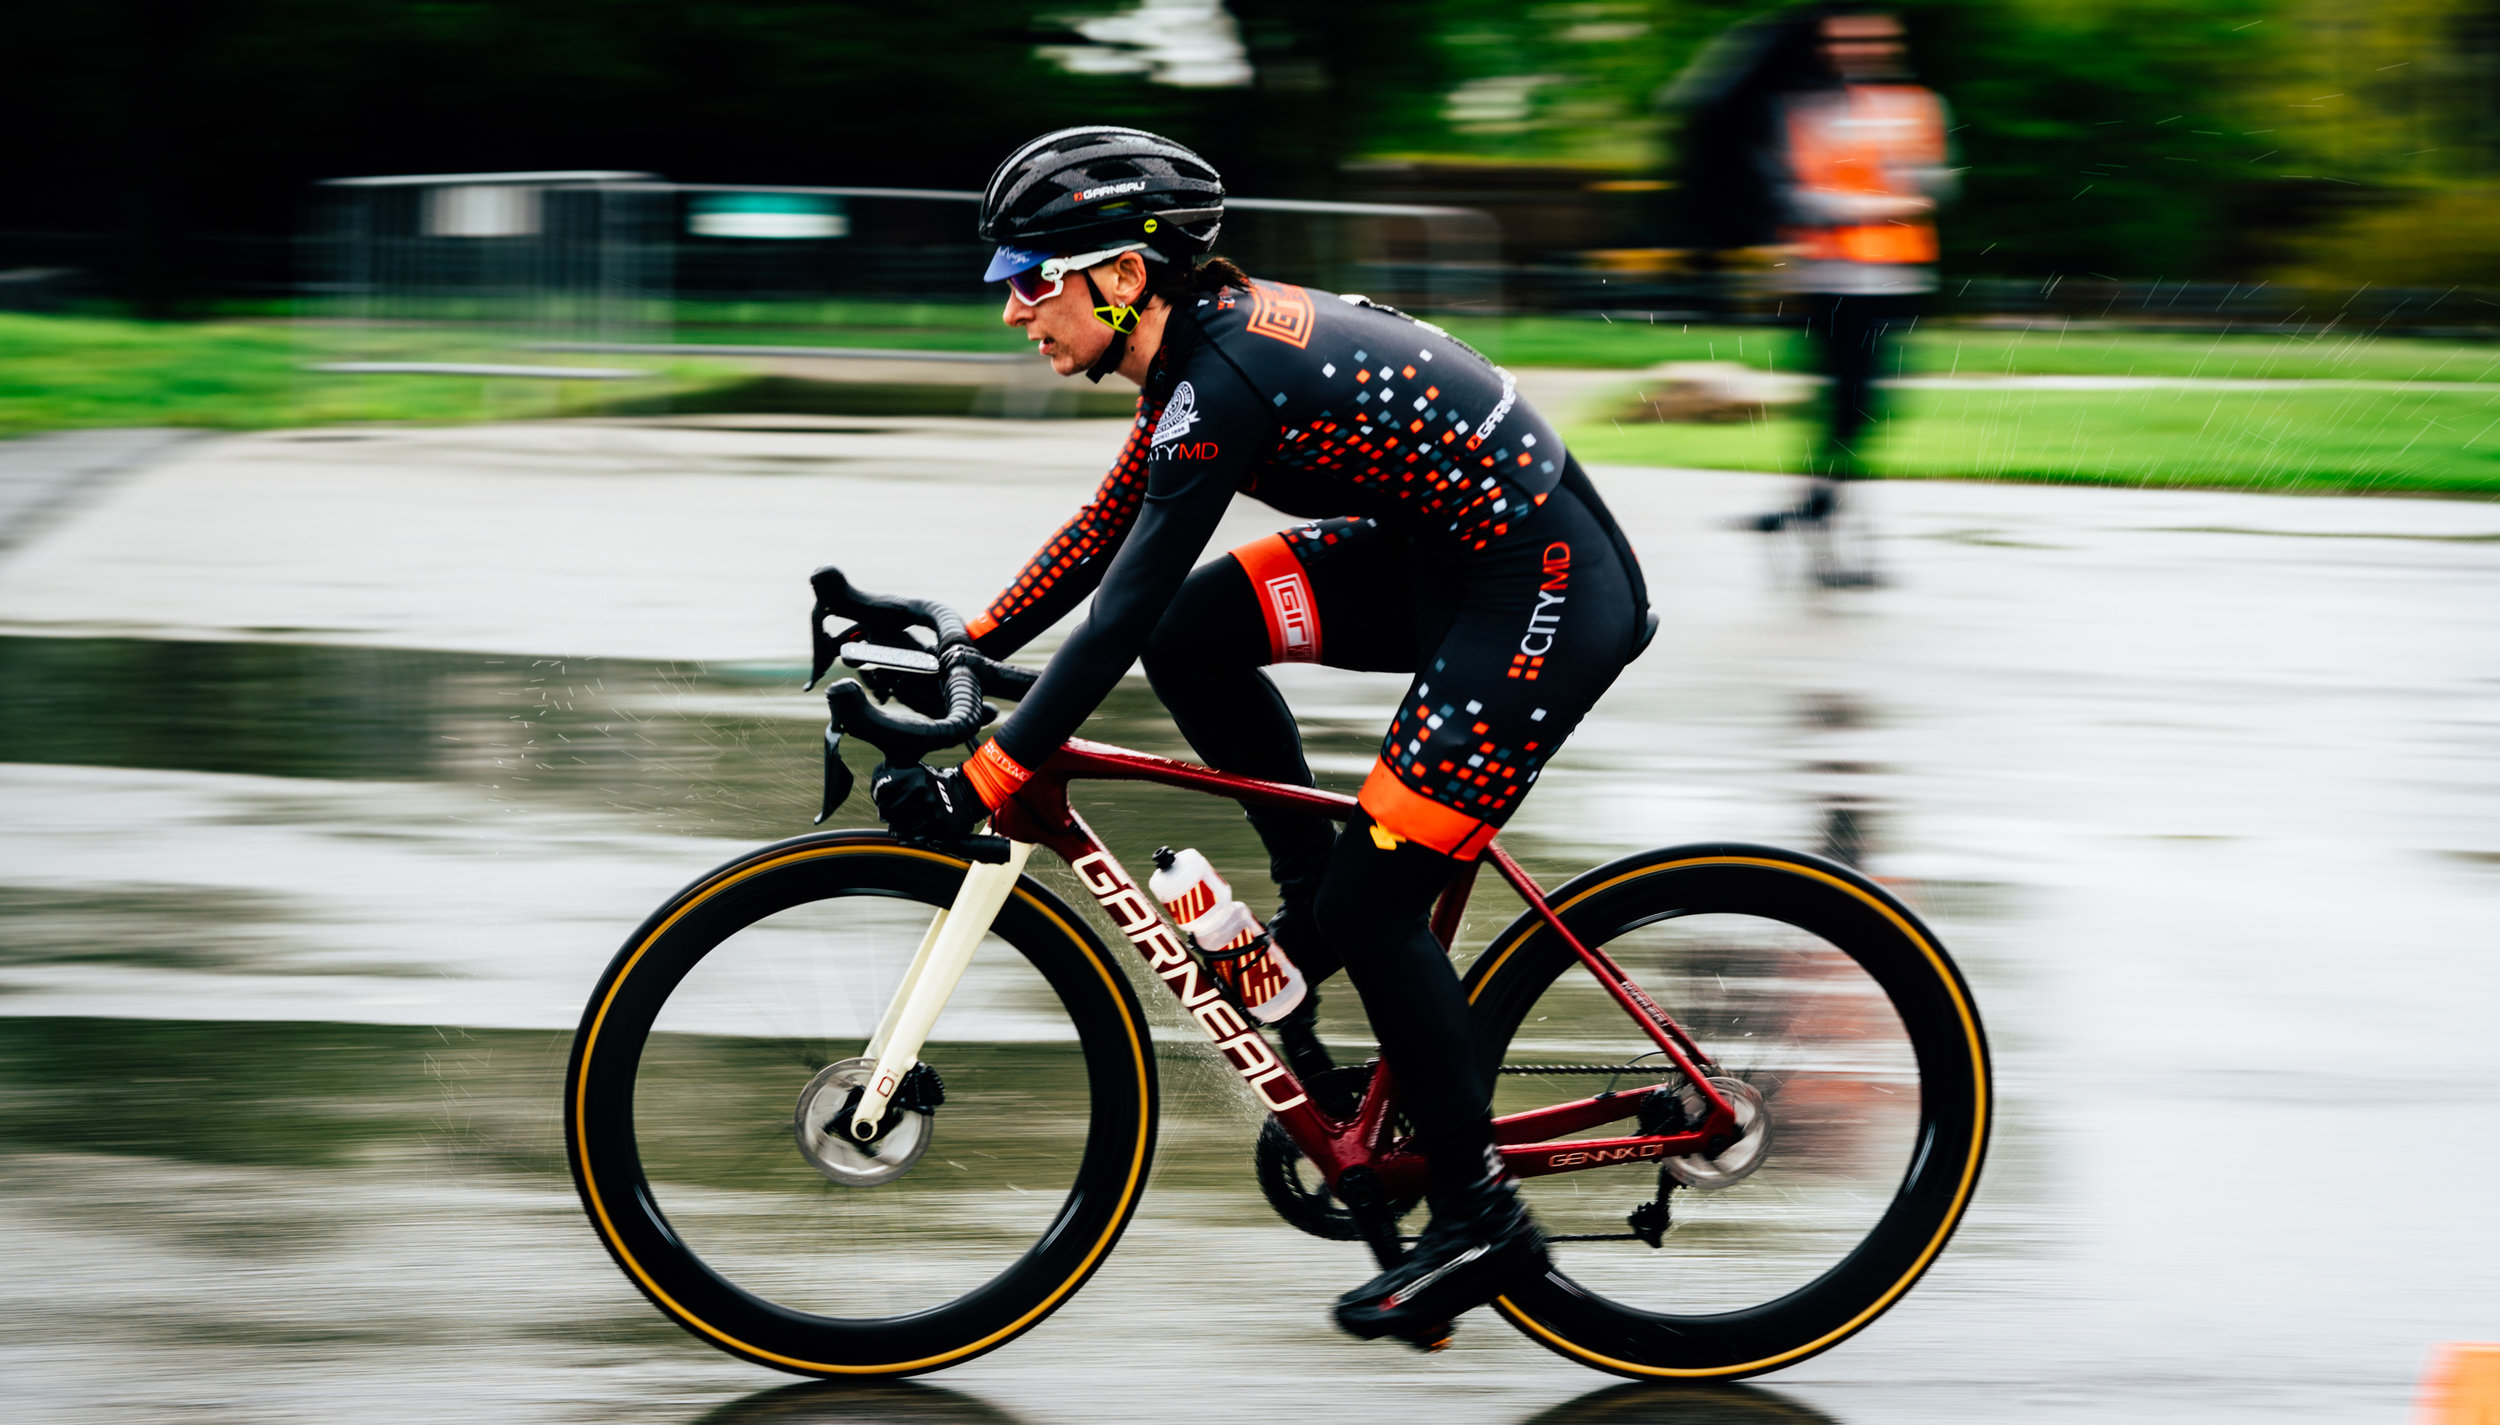 Photo Rhetoric - To Be Determined - Zach Koop Memorial Crit at Orchard Bearch-3033.jpg